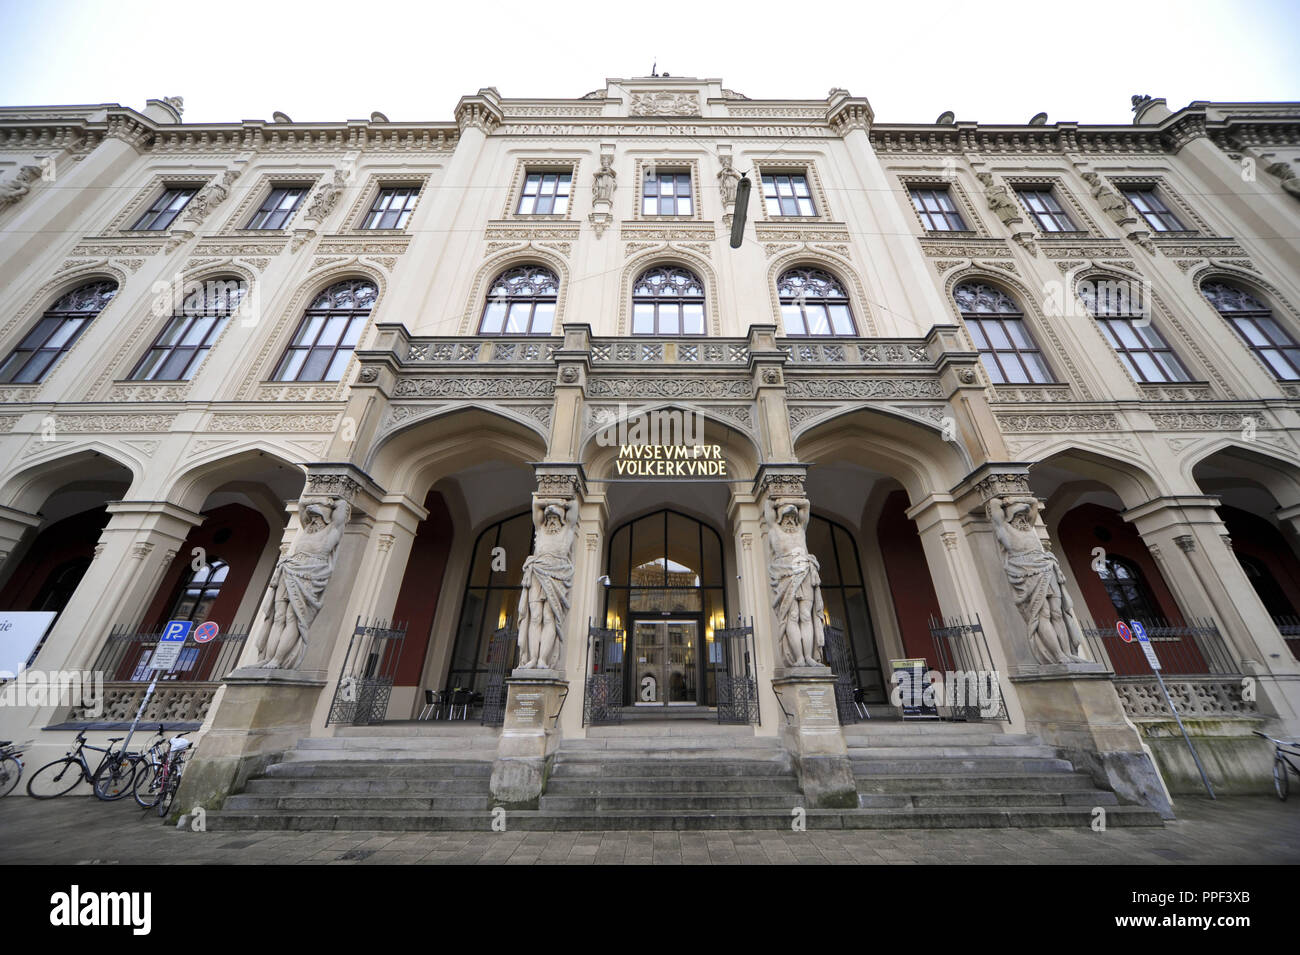 The State Museum of Ethnology in the Maximilianstrasse 42 in Munich. - Stock Image